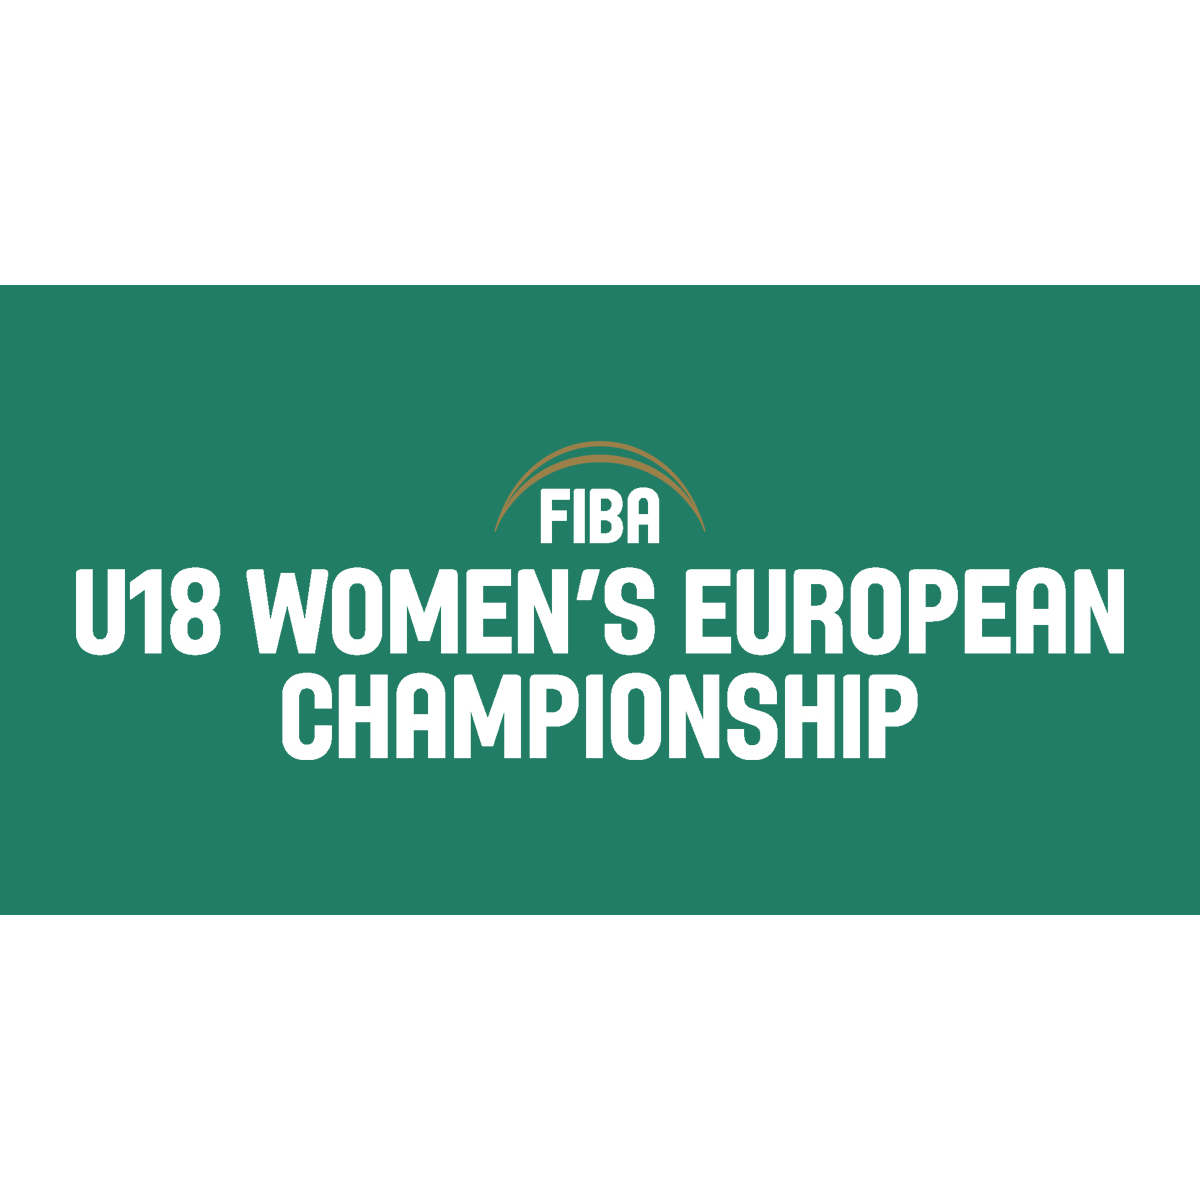 2014 FIBA U18 Women's European Basketball Championship